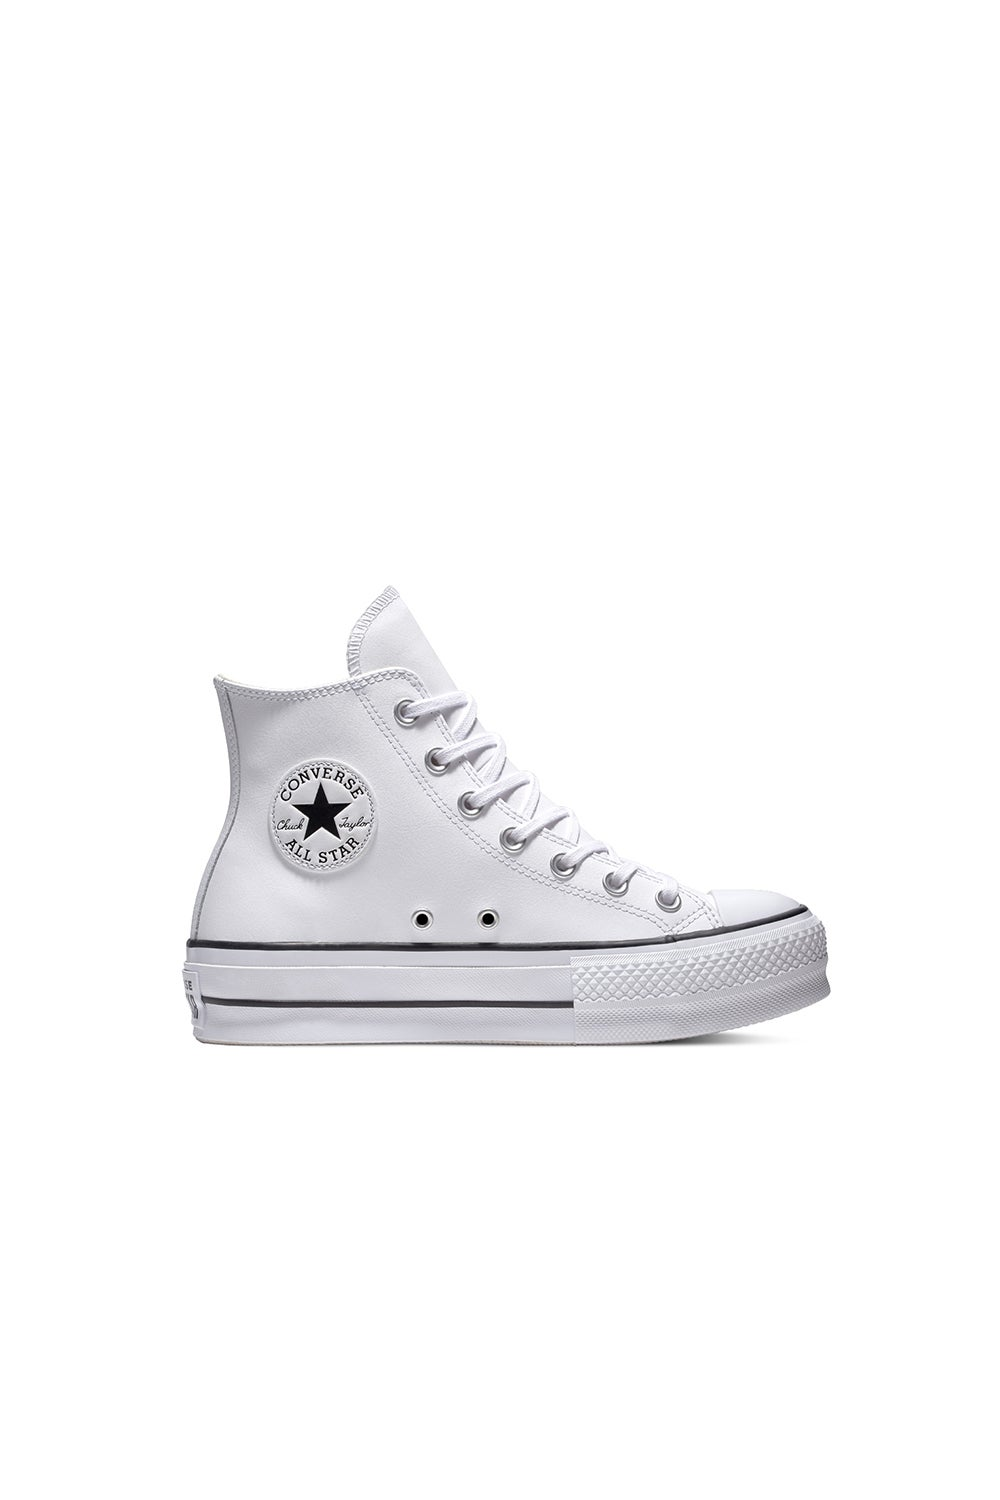 Converse Chuck Taylor All Star Lift Clean Leather High Top White/Black/White